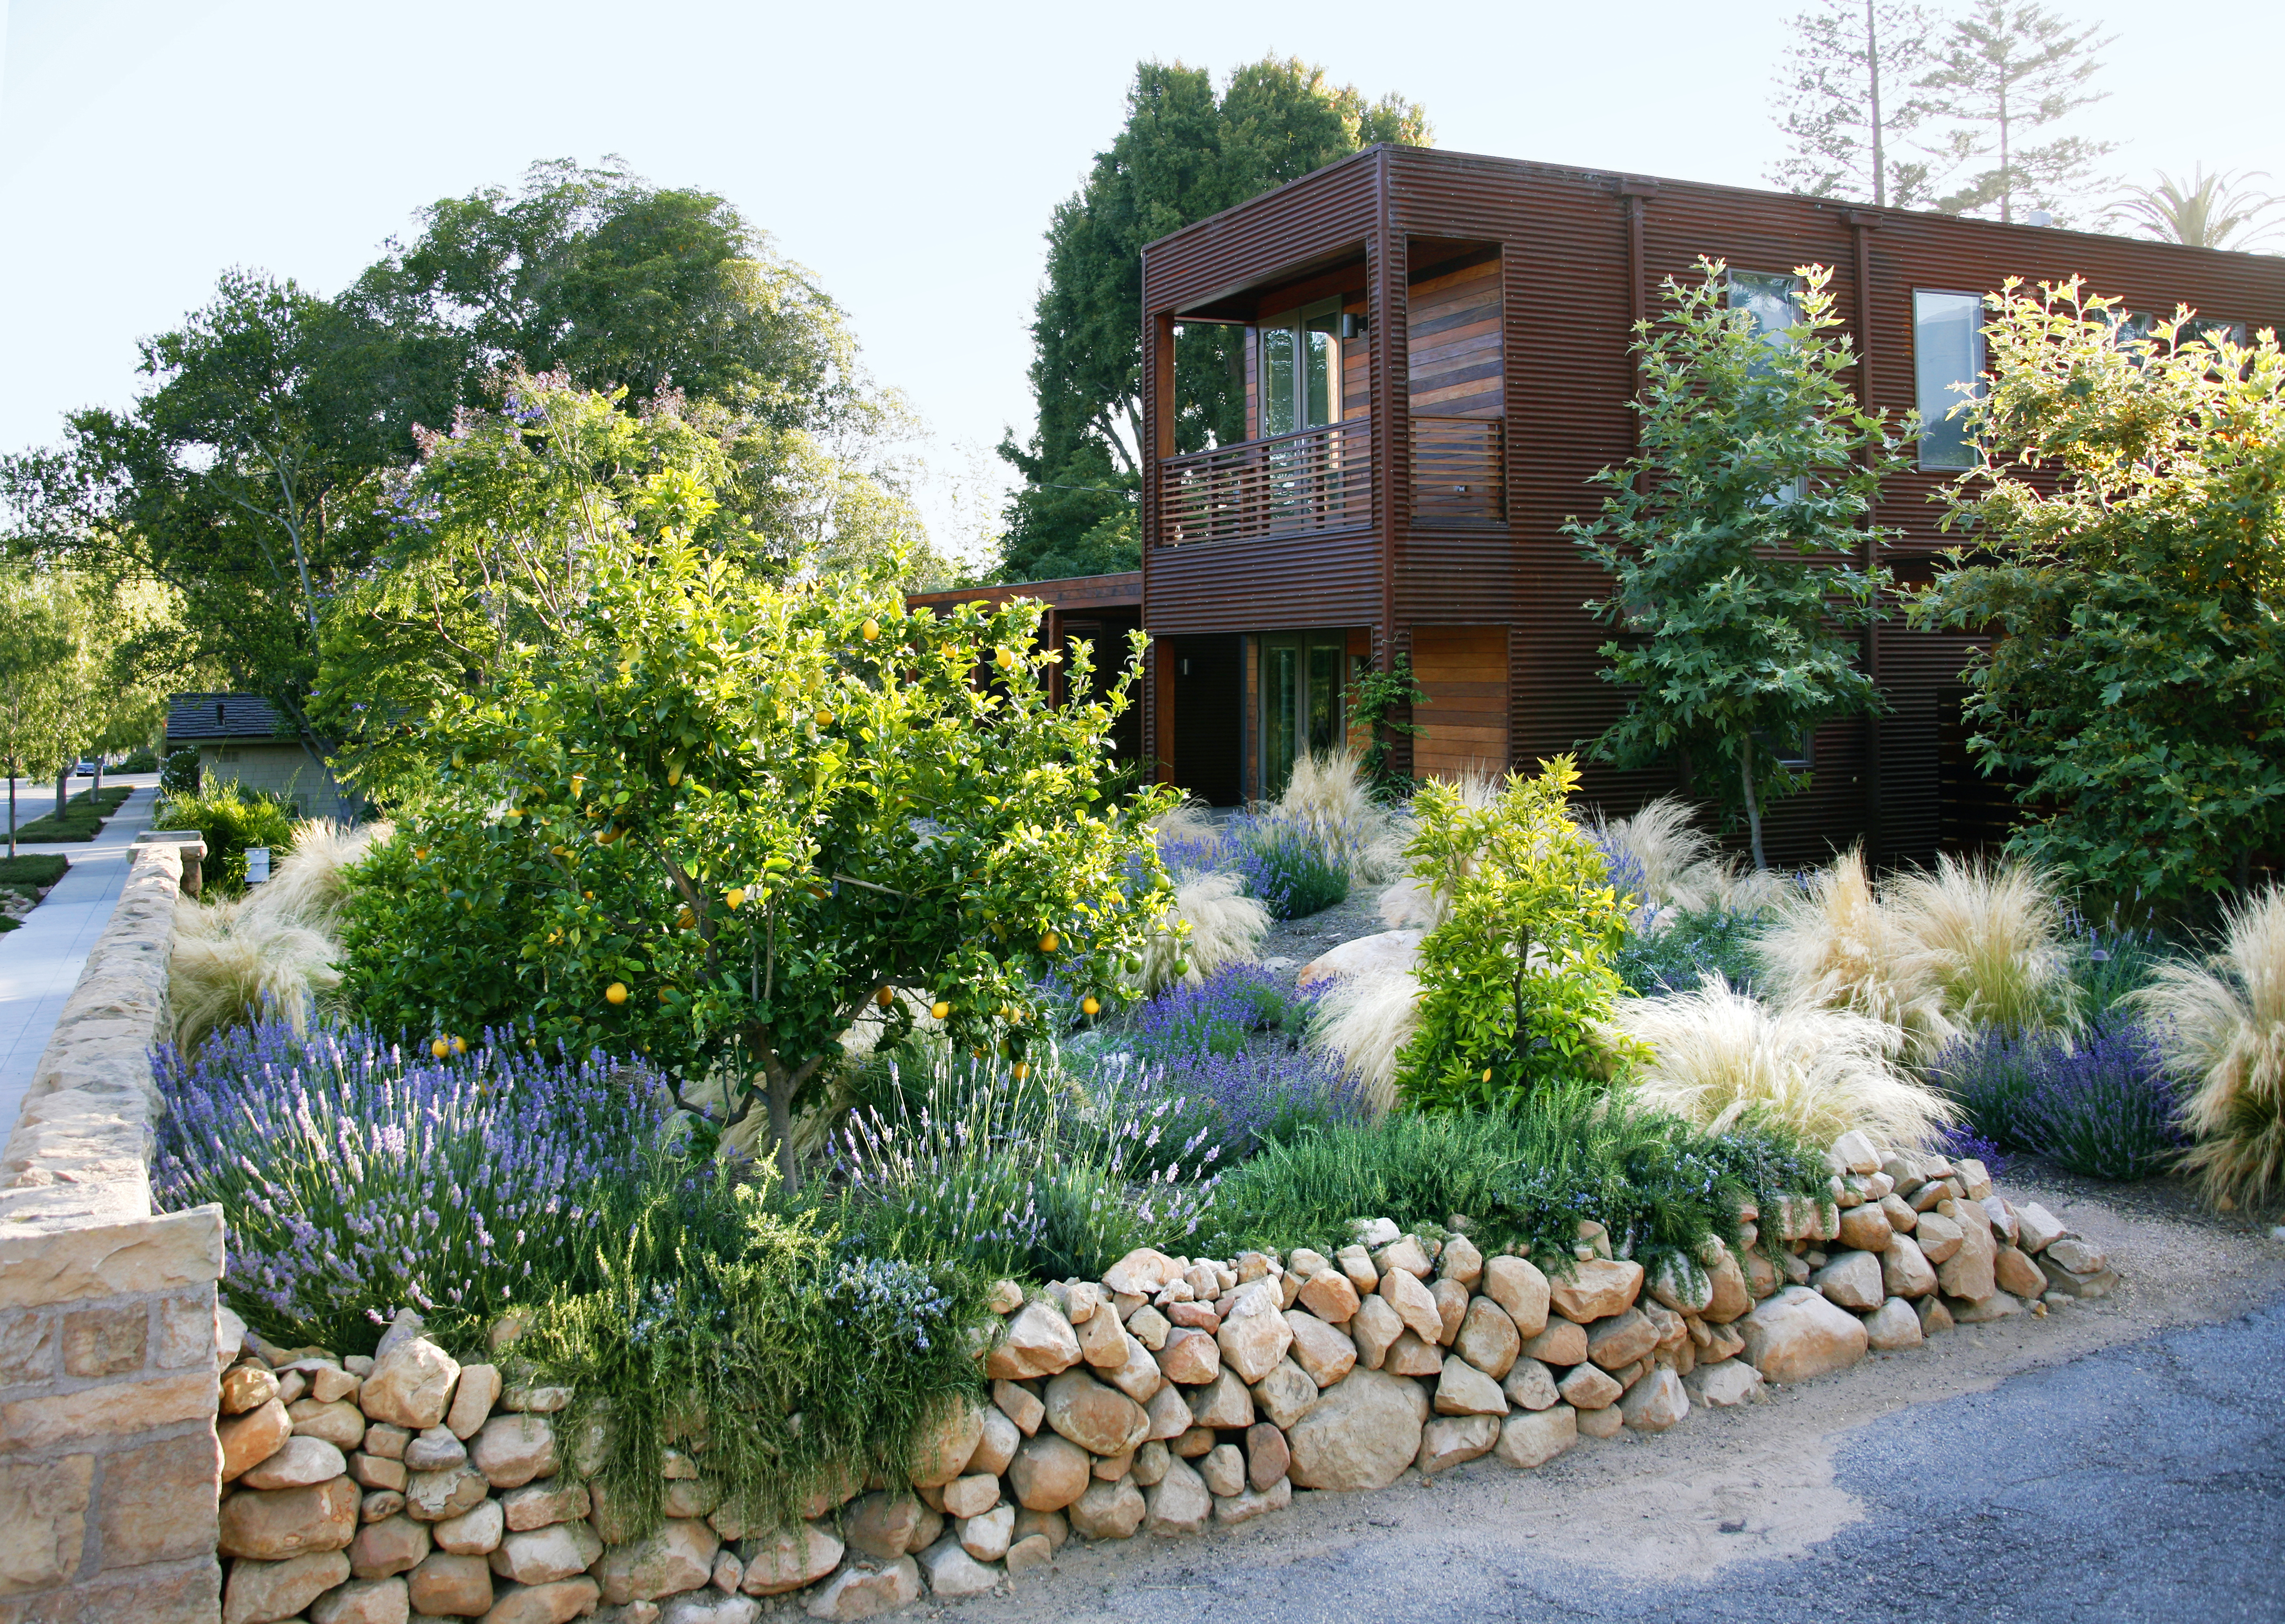 Designing with Drought-Resistant Plants - Sunset - Sunset Magazine on small backyard ideas, no grass backyard ideas, low cost fire pit, low cost gardens, cheap backyard ideas, low cost outdoor kitchen, low cost food, fun backyard ideas, low cost interior design, low cost swimming pools, low cost outdoor rooms, inexpensive backyard patio ideas, low cost concrete pavers, pet backyard ideas, low cost patio designs, low cost gifts, low maintenance fence ideas, low cost home, low cost outdoor fireplace, low cost swing sets,